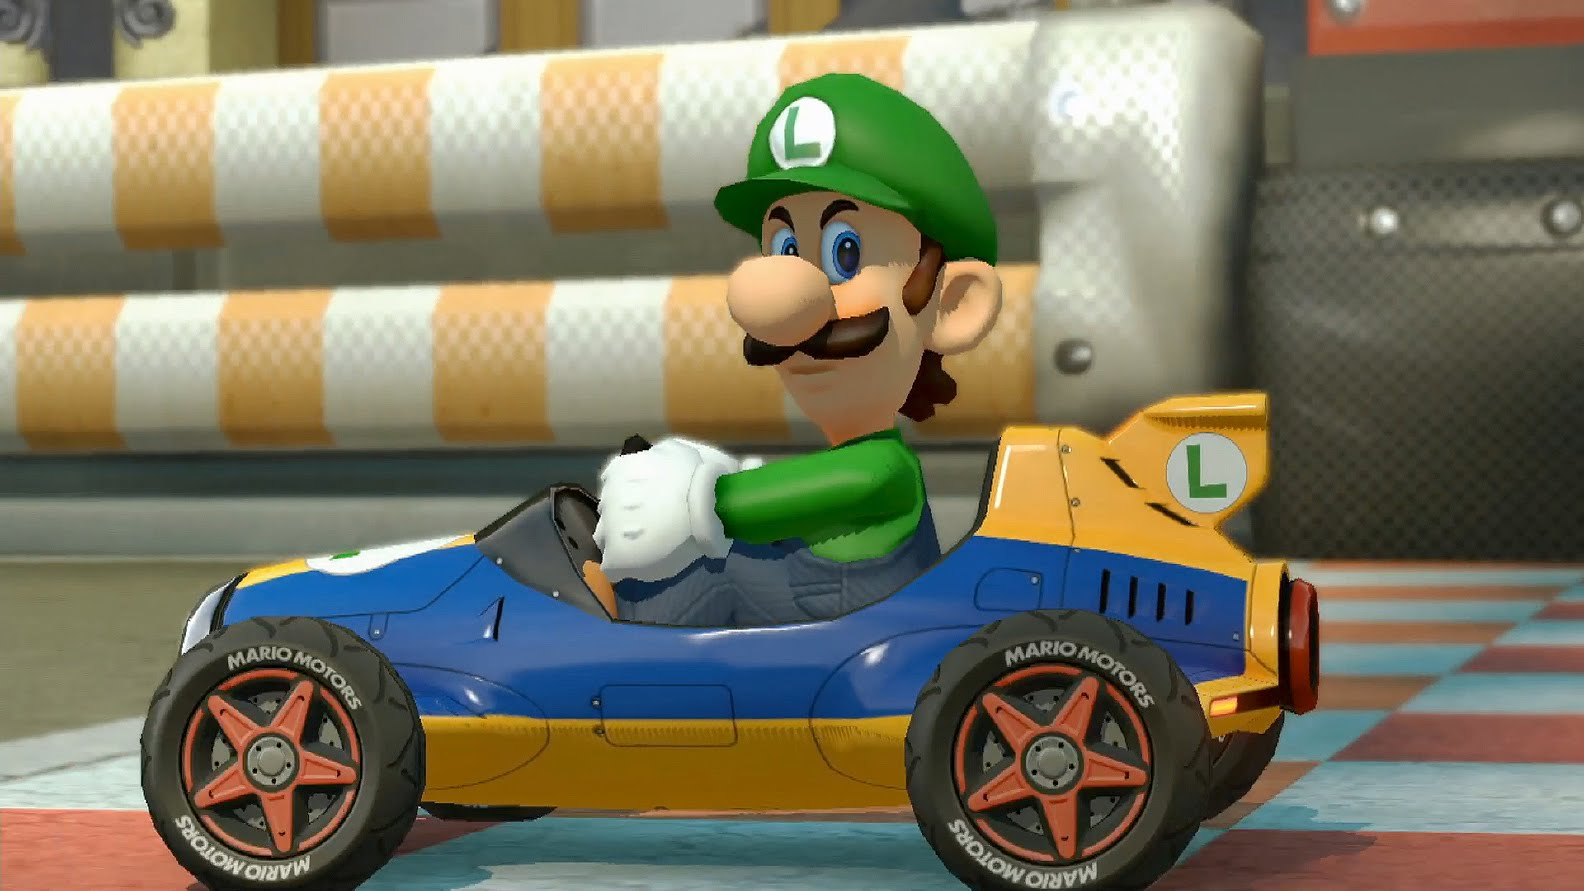 Mario Kart 64 On Wii U Does Not Have Ghost Data Support